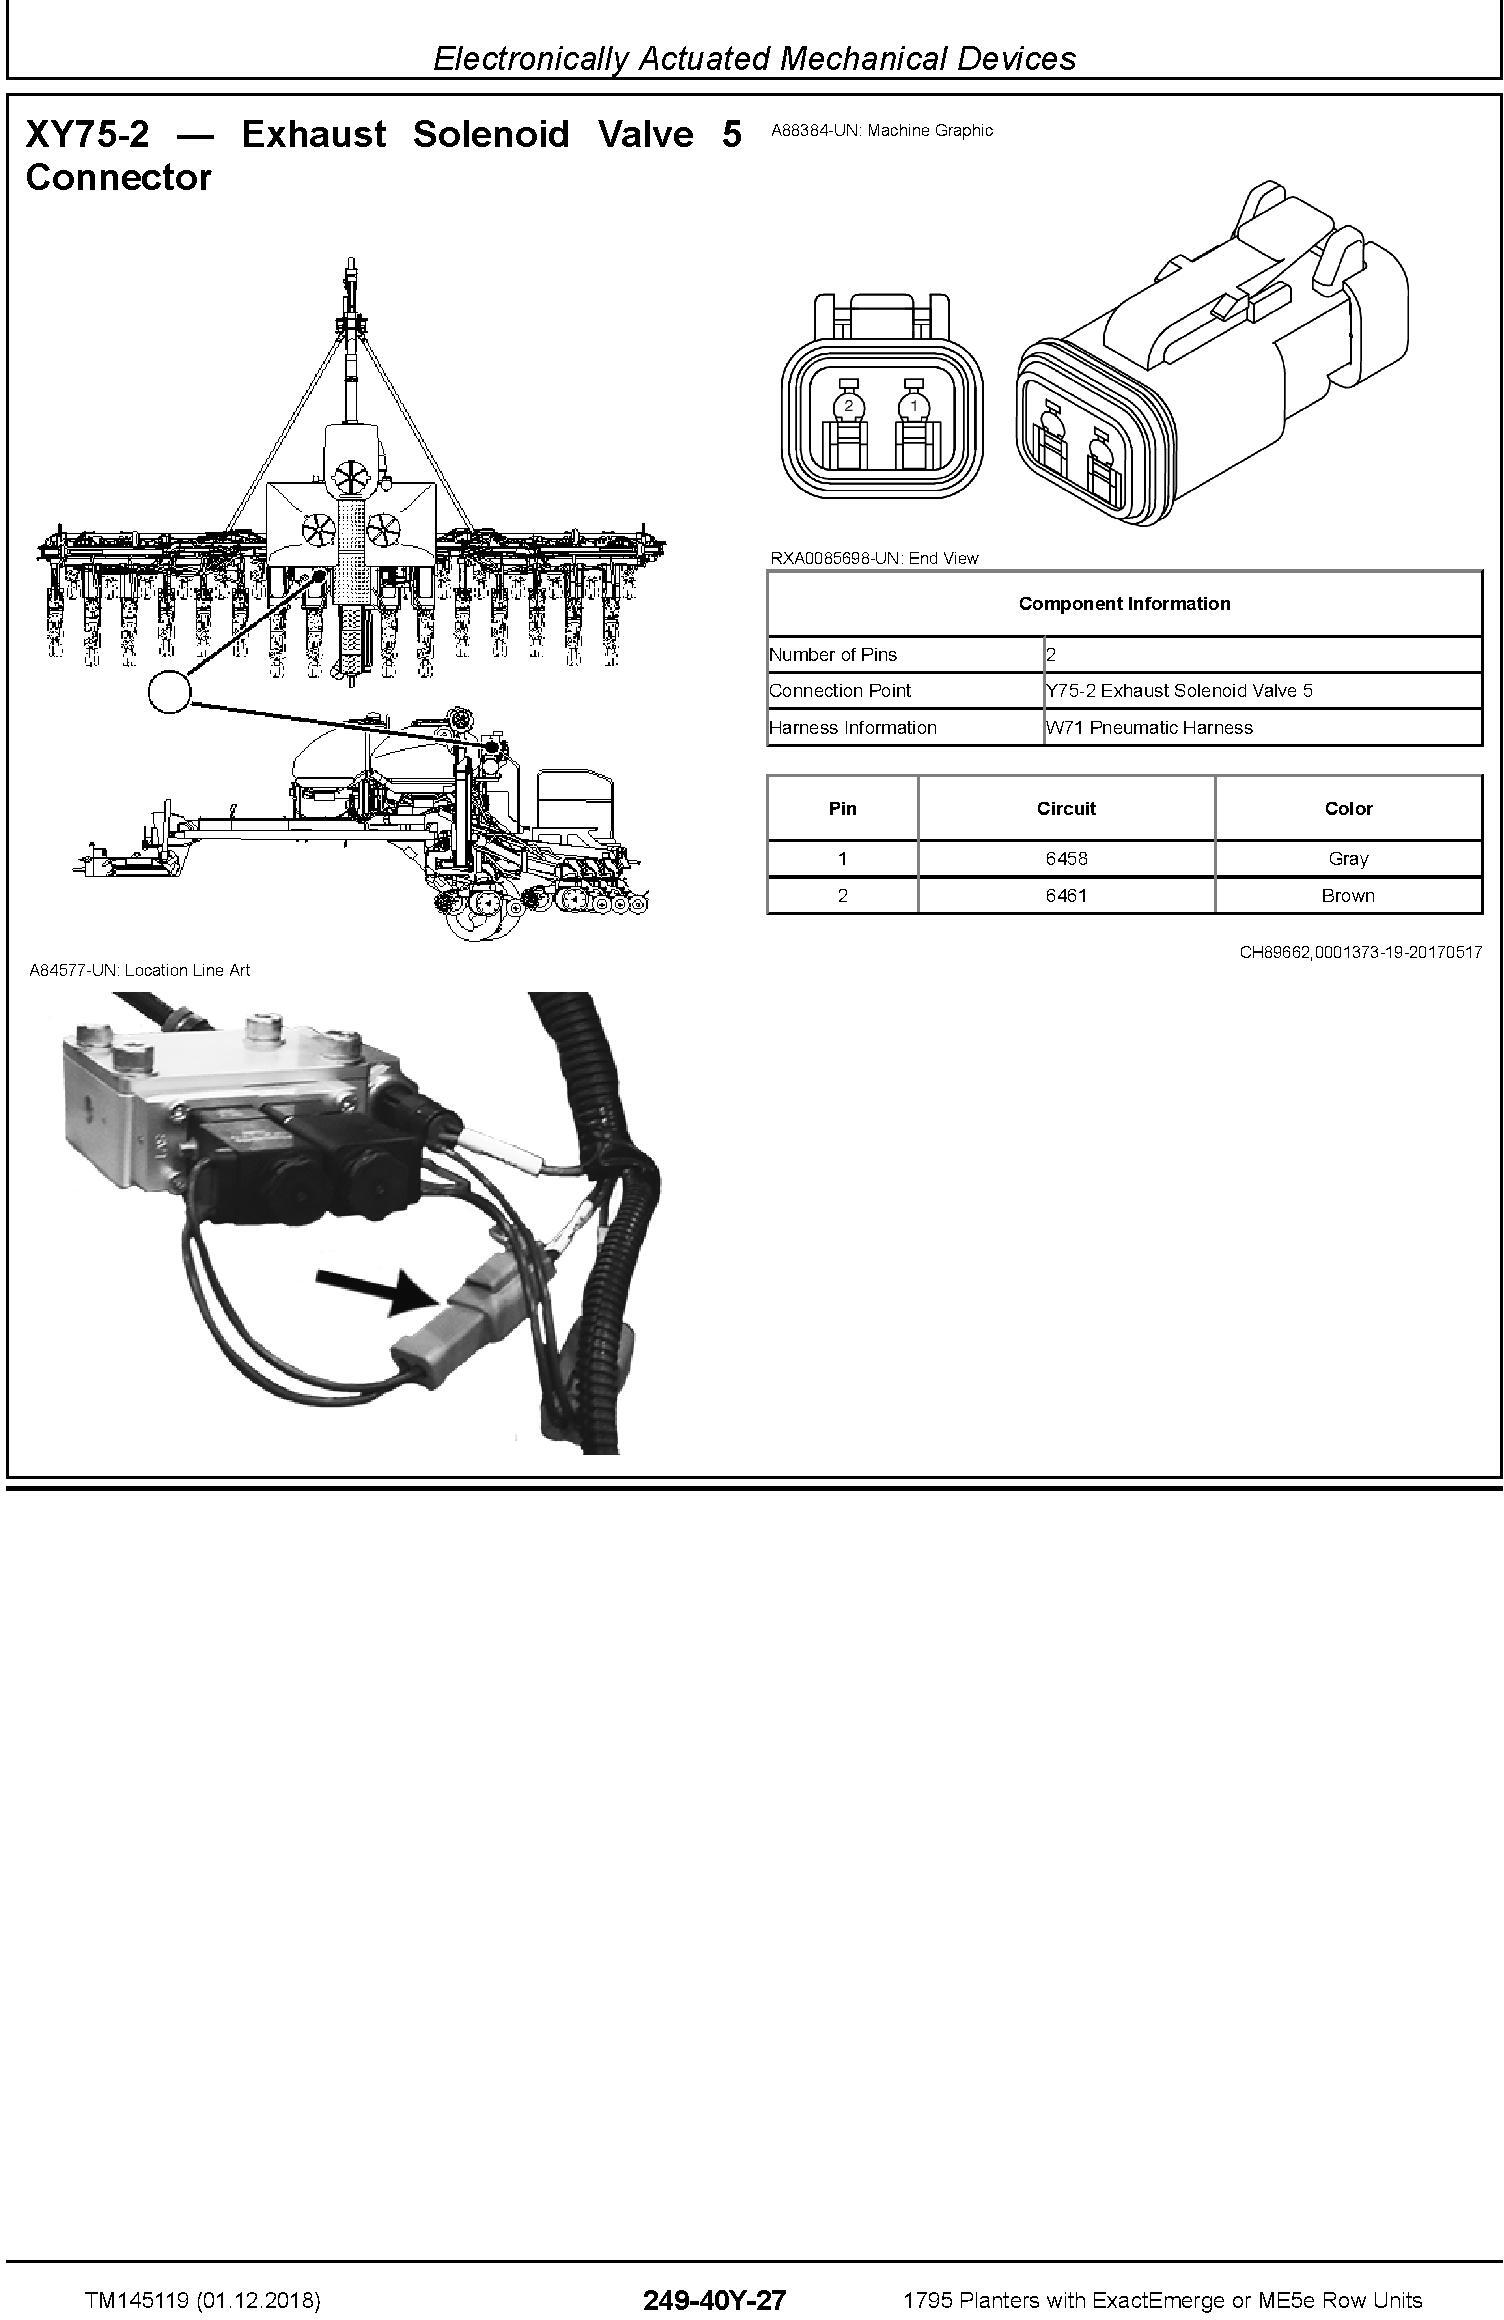 John Deere 1795 Planters with ExactEmerge or ME5e Row Units Diagnostic Technical Manual (TM145119) - 2